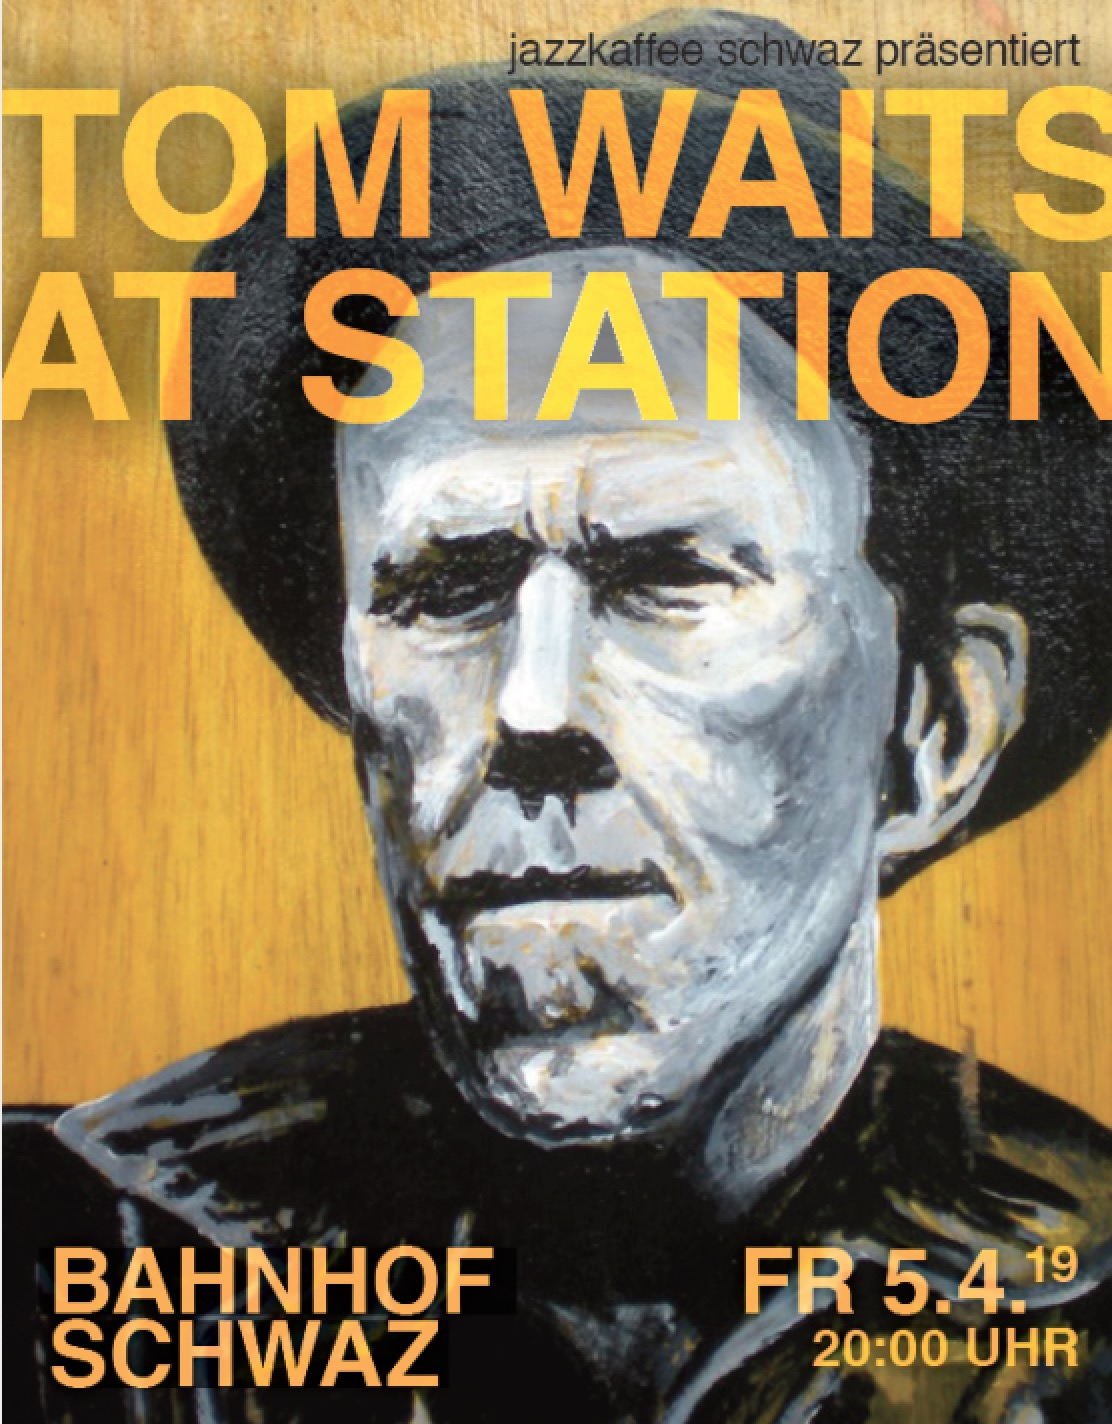 jazzkaffee schwaz TOM WAITS AT STATION 190405 - clip.jpg